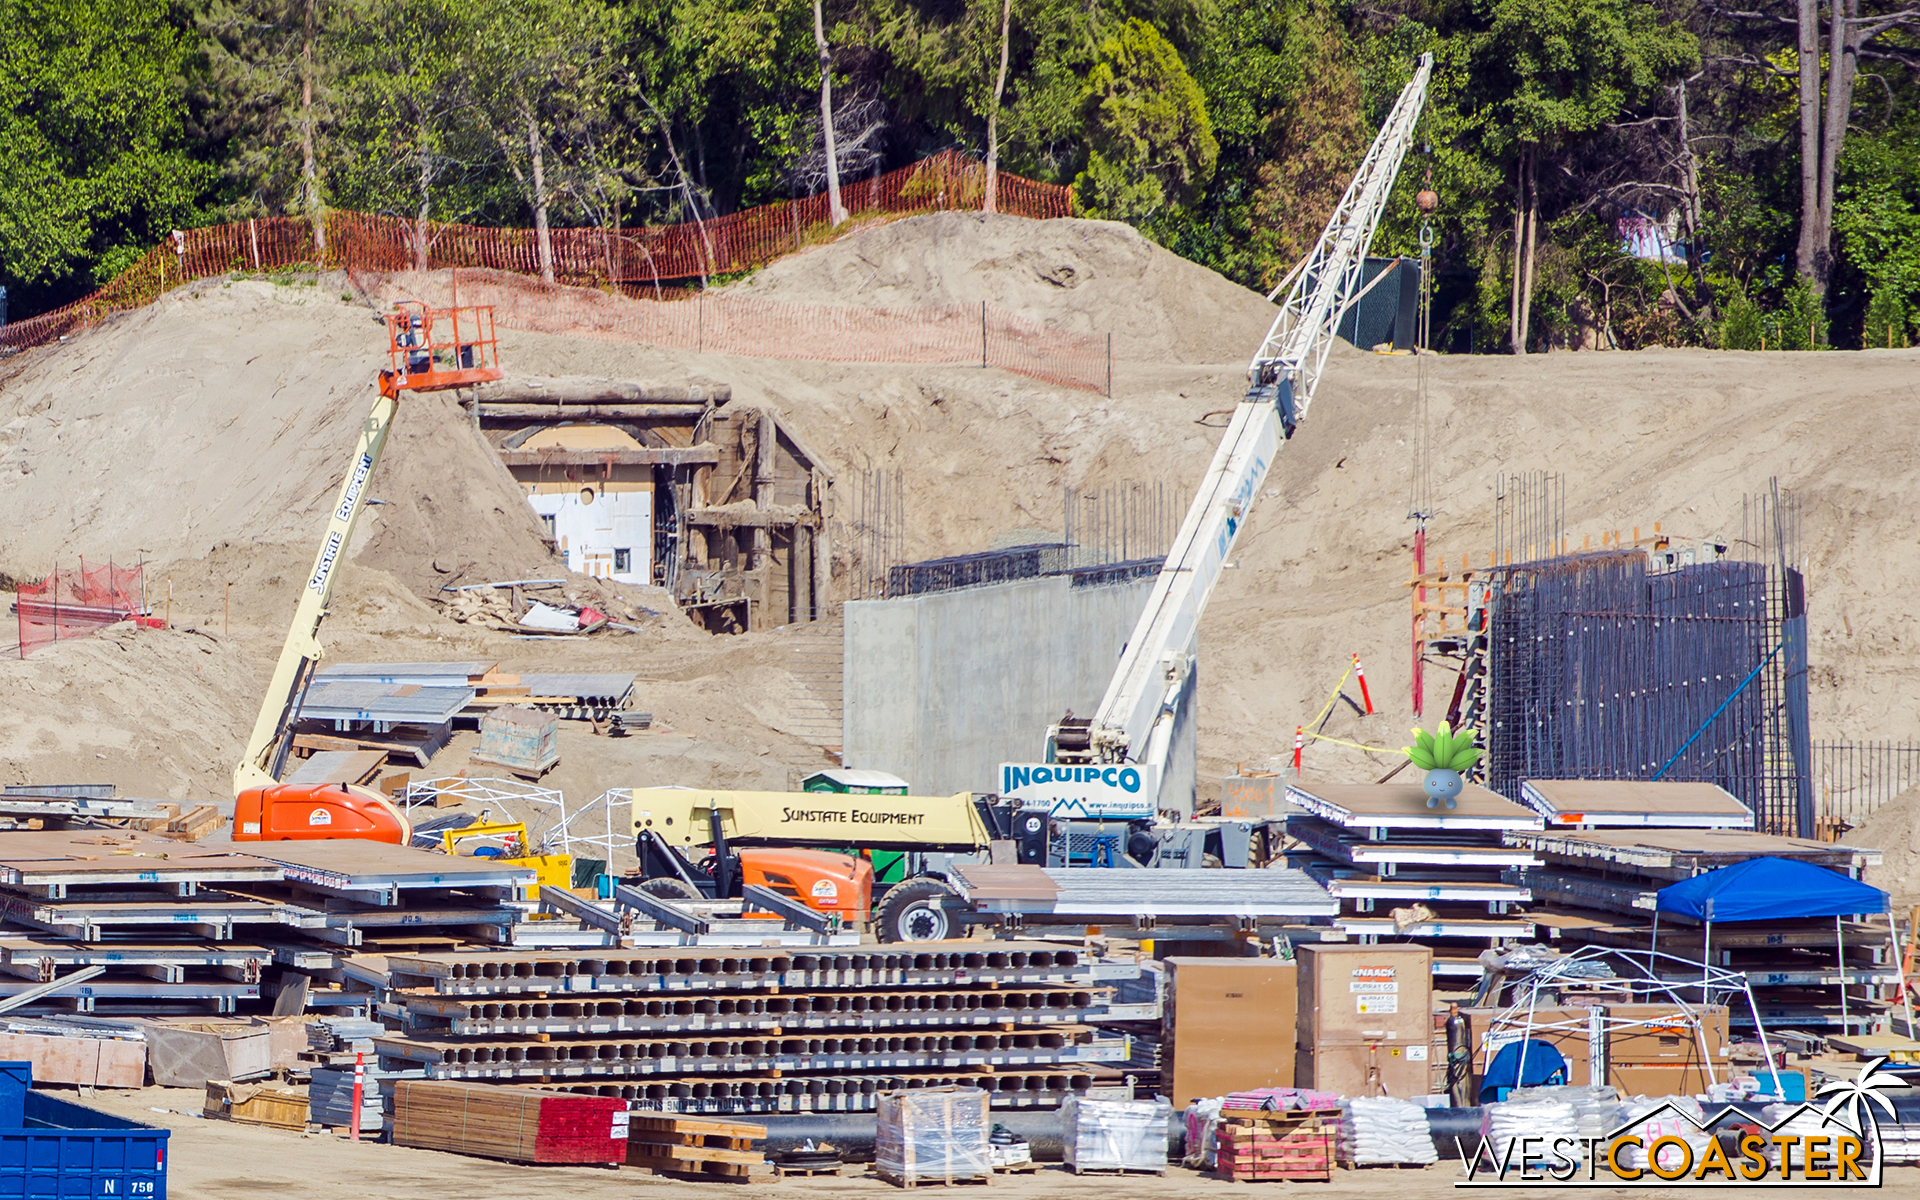 You can also see the tunnel that the Disneyland railroad will route through. At least it would appear that this is for the railroad.